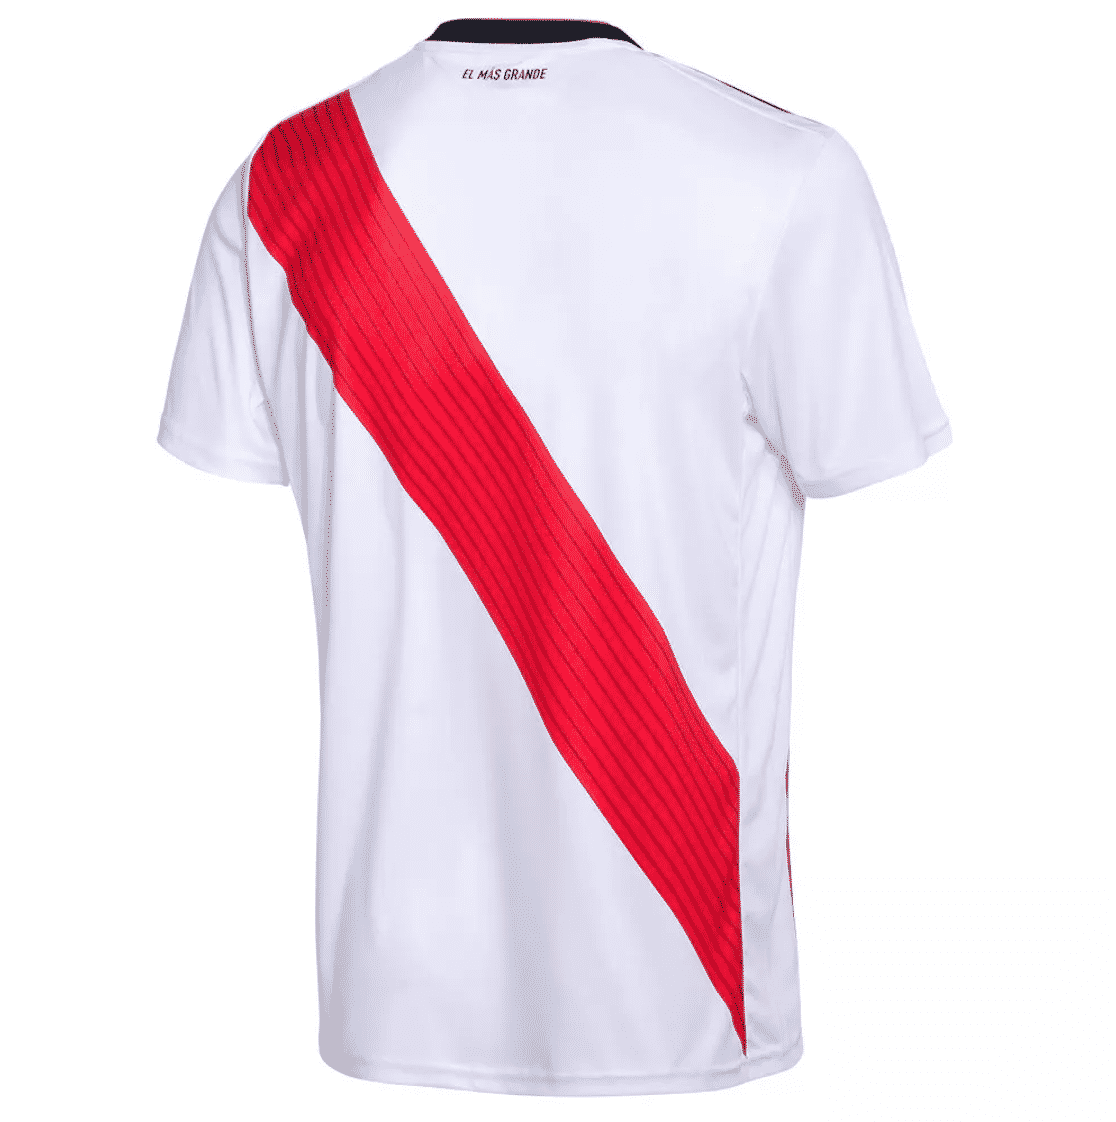 maillot-domicile-river-plate-2018-2019-adidas-dos